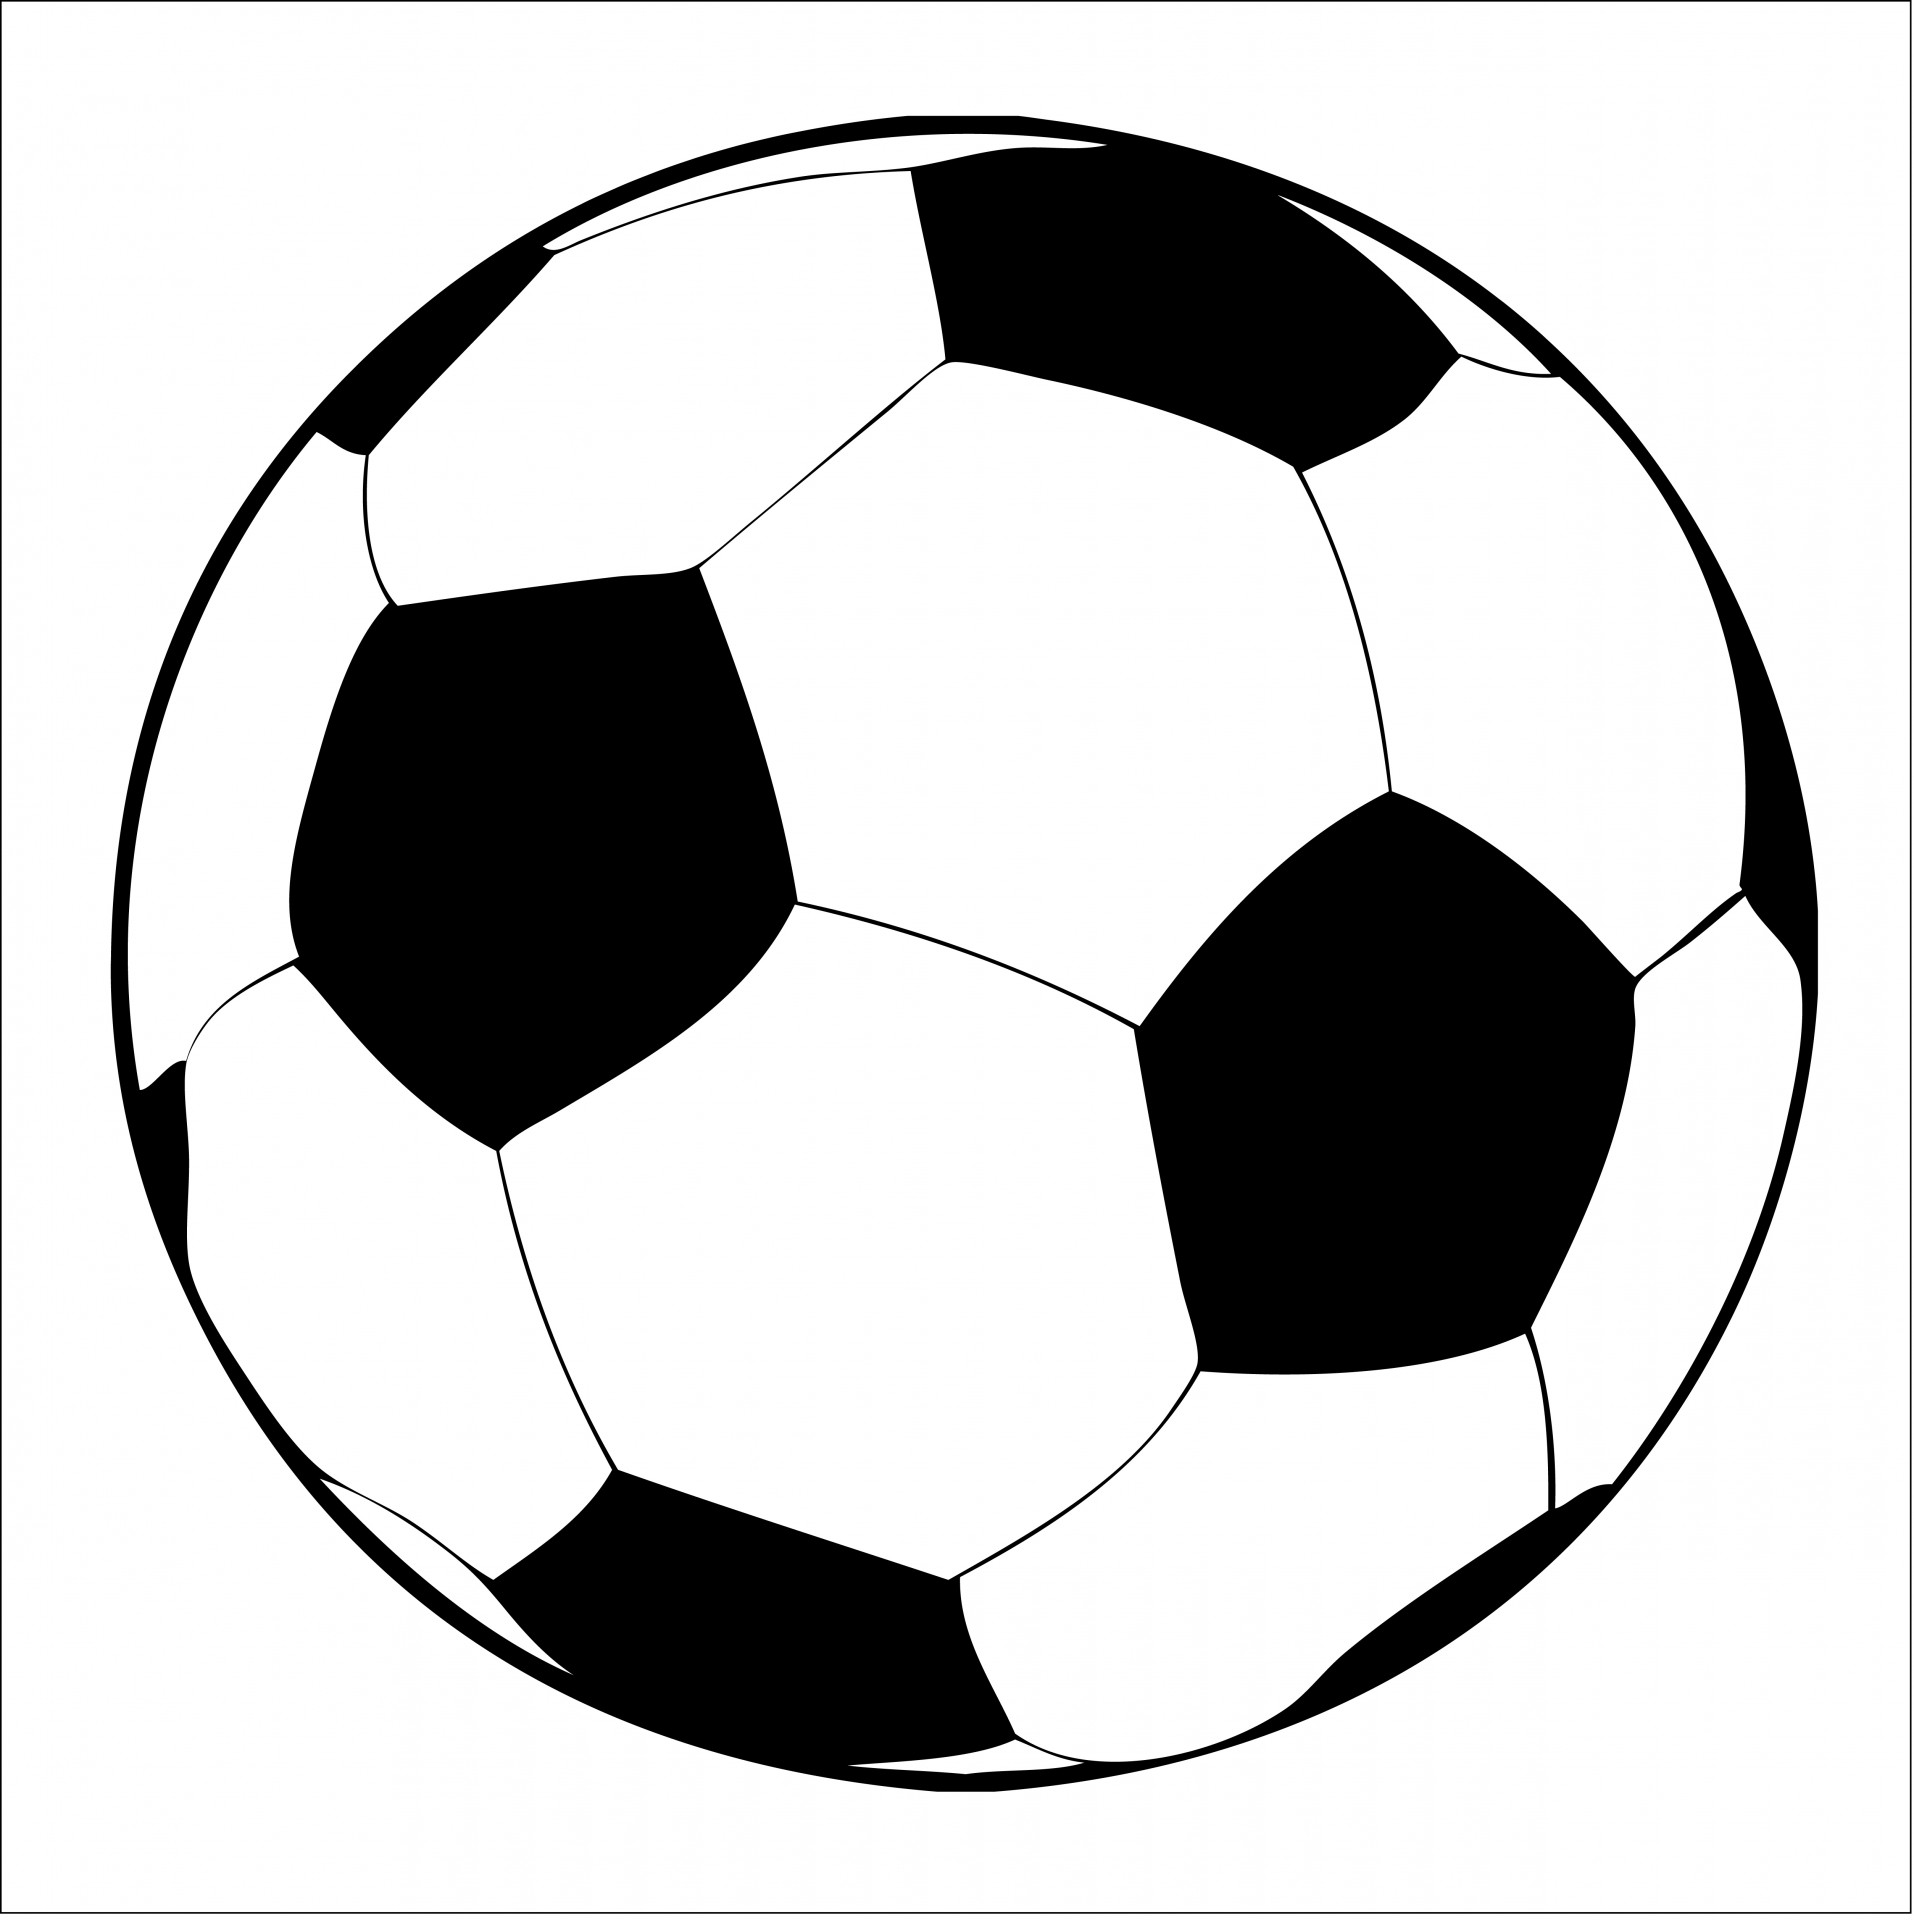 Soccer free stock photo. Ball clipart clip art library download